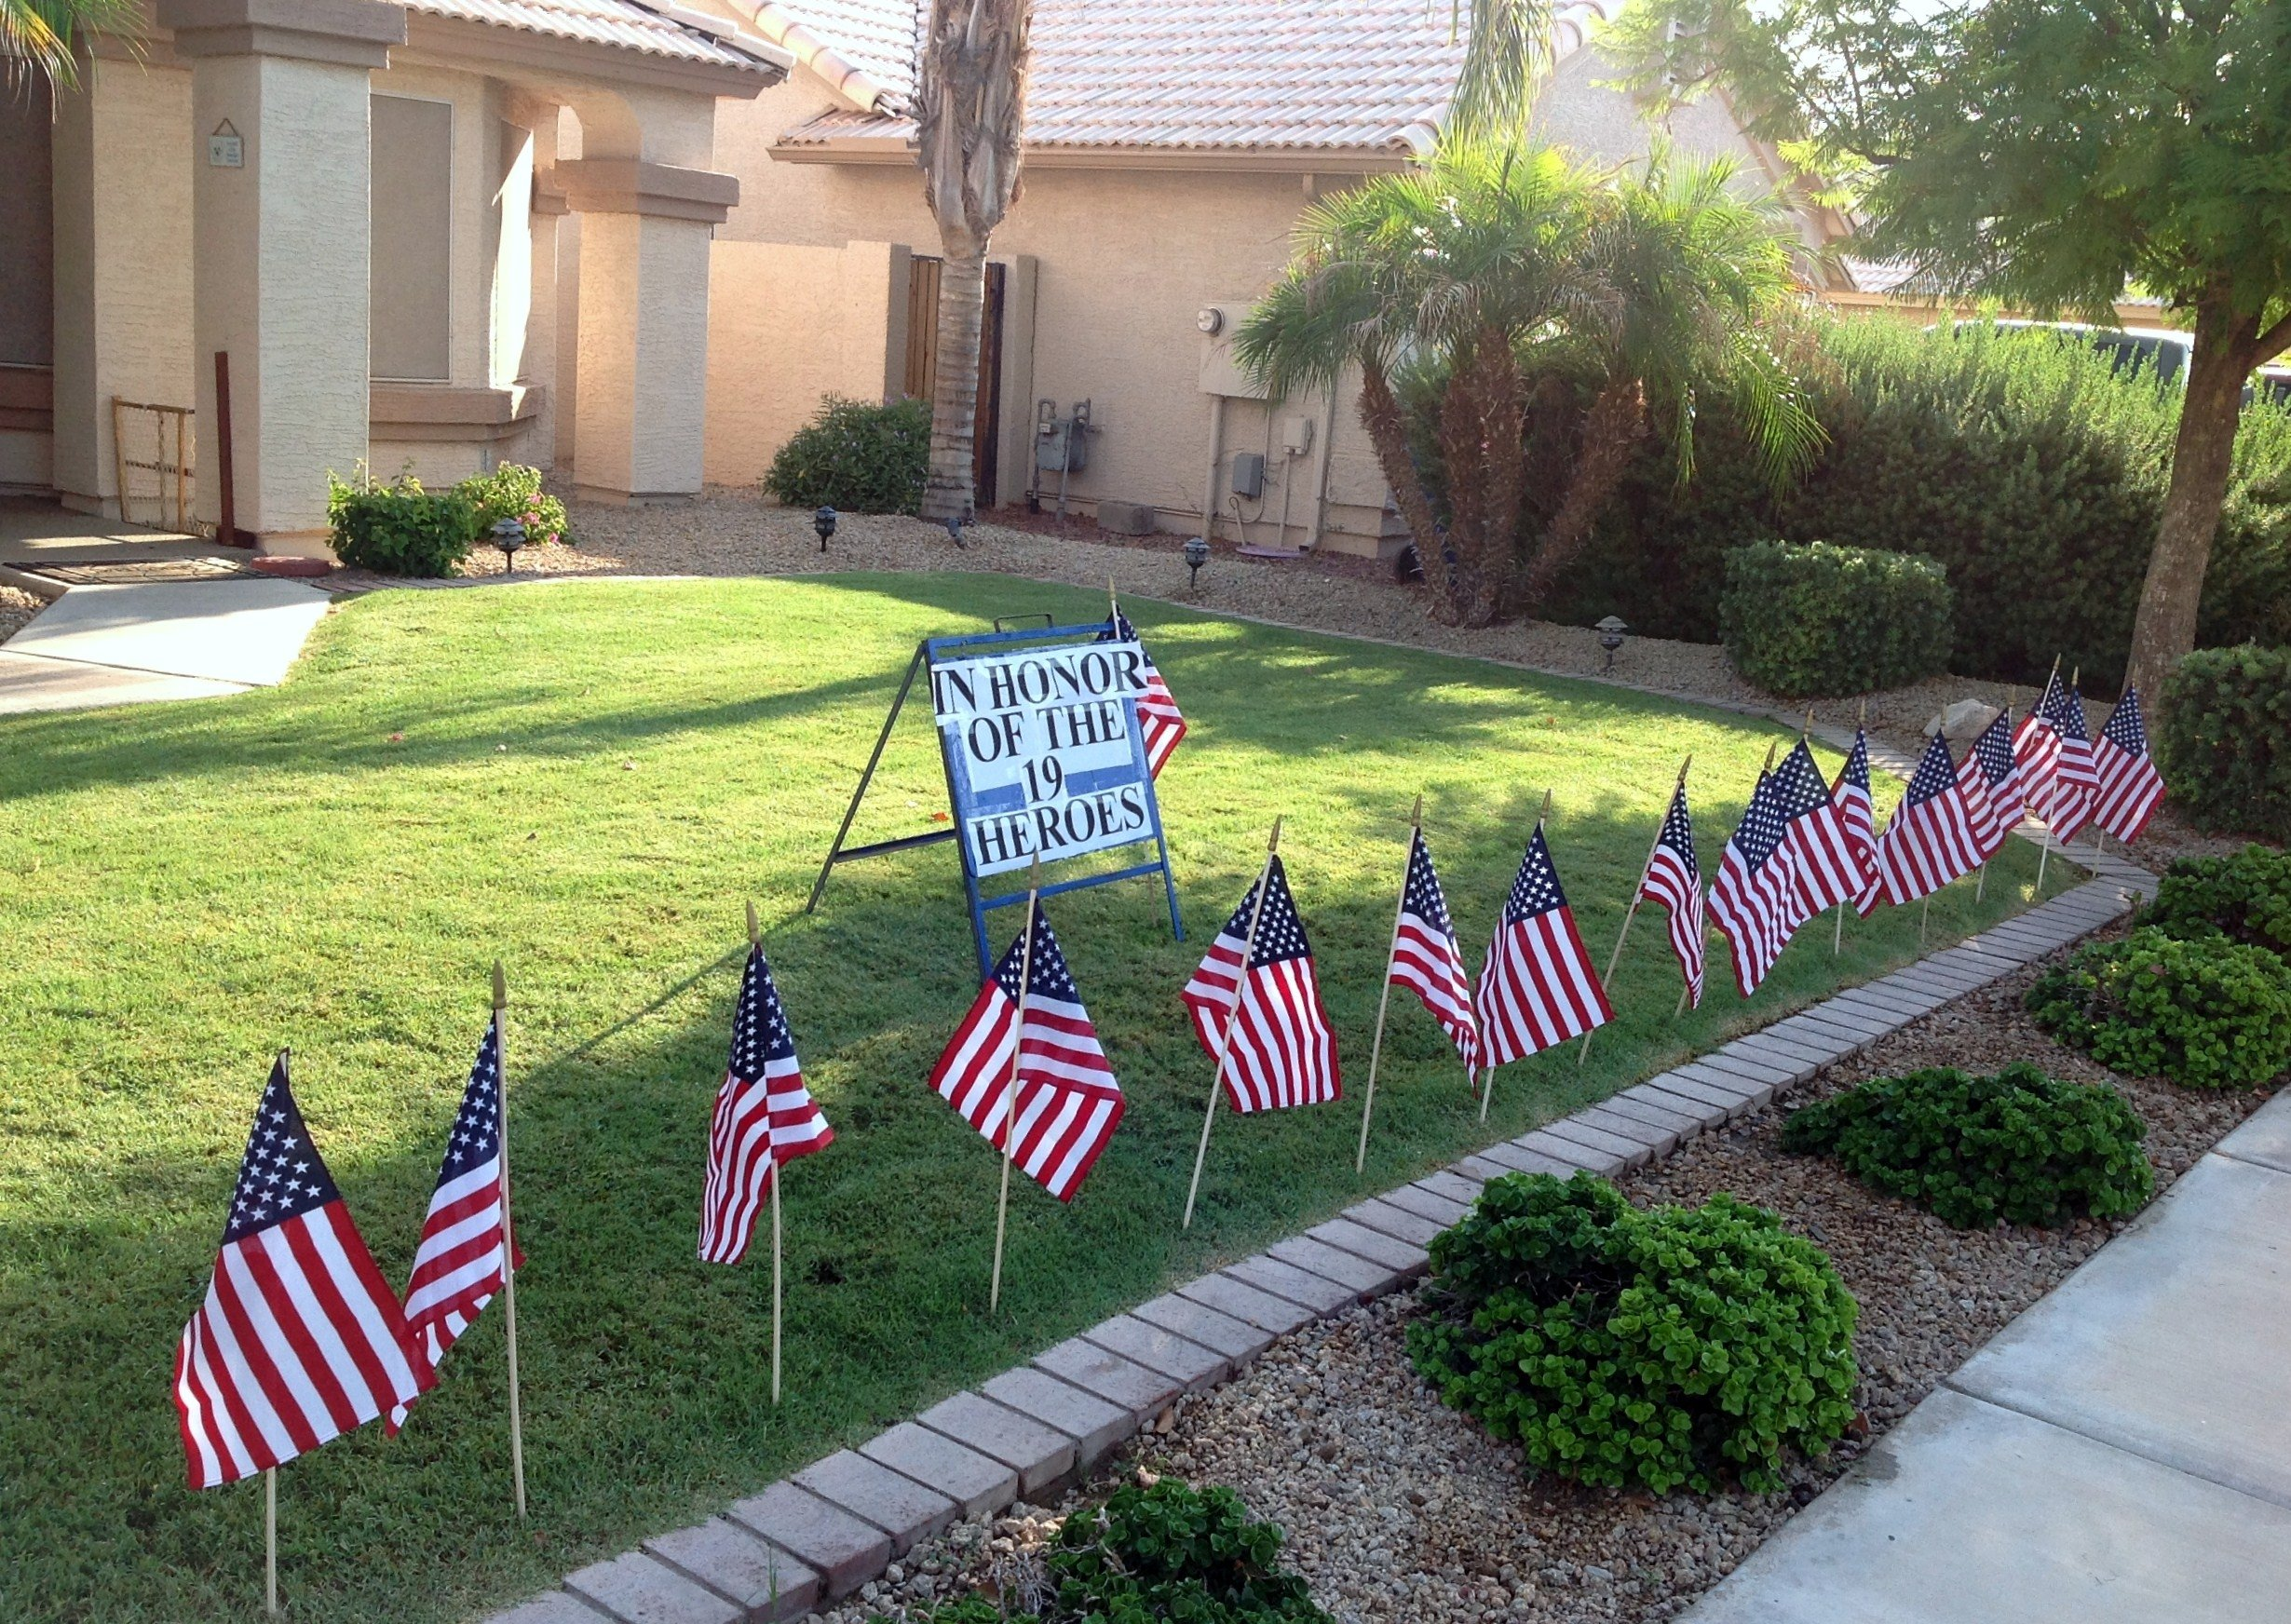 This tribute to the firefighters was set up at 1670 E. San Tan St. in Chandler.